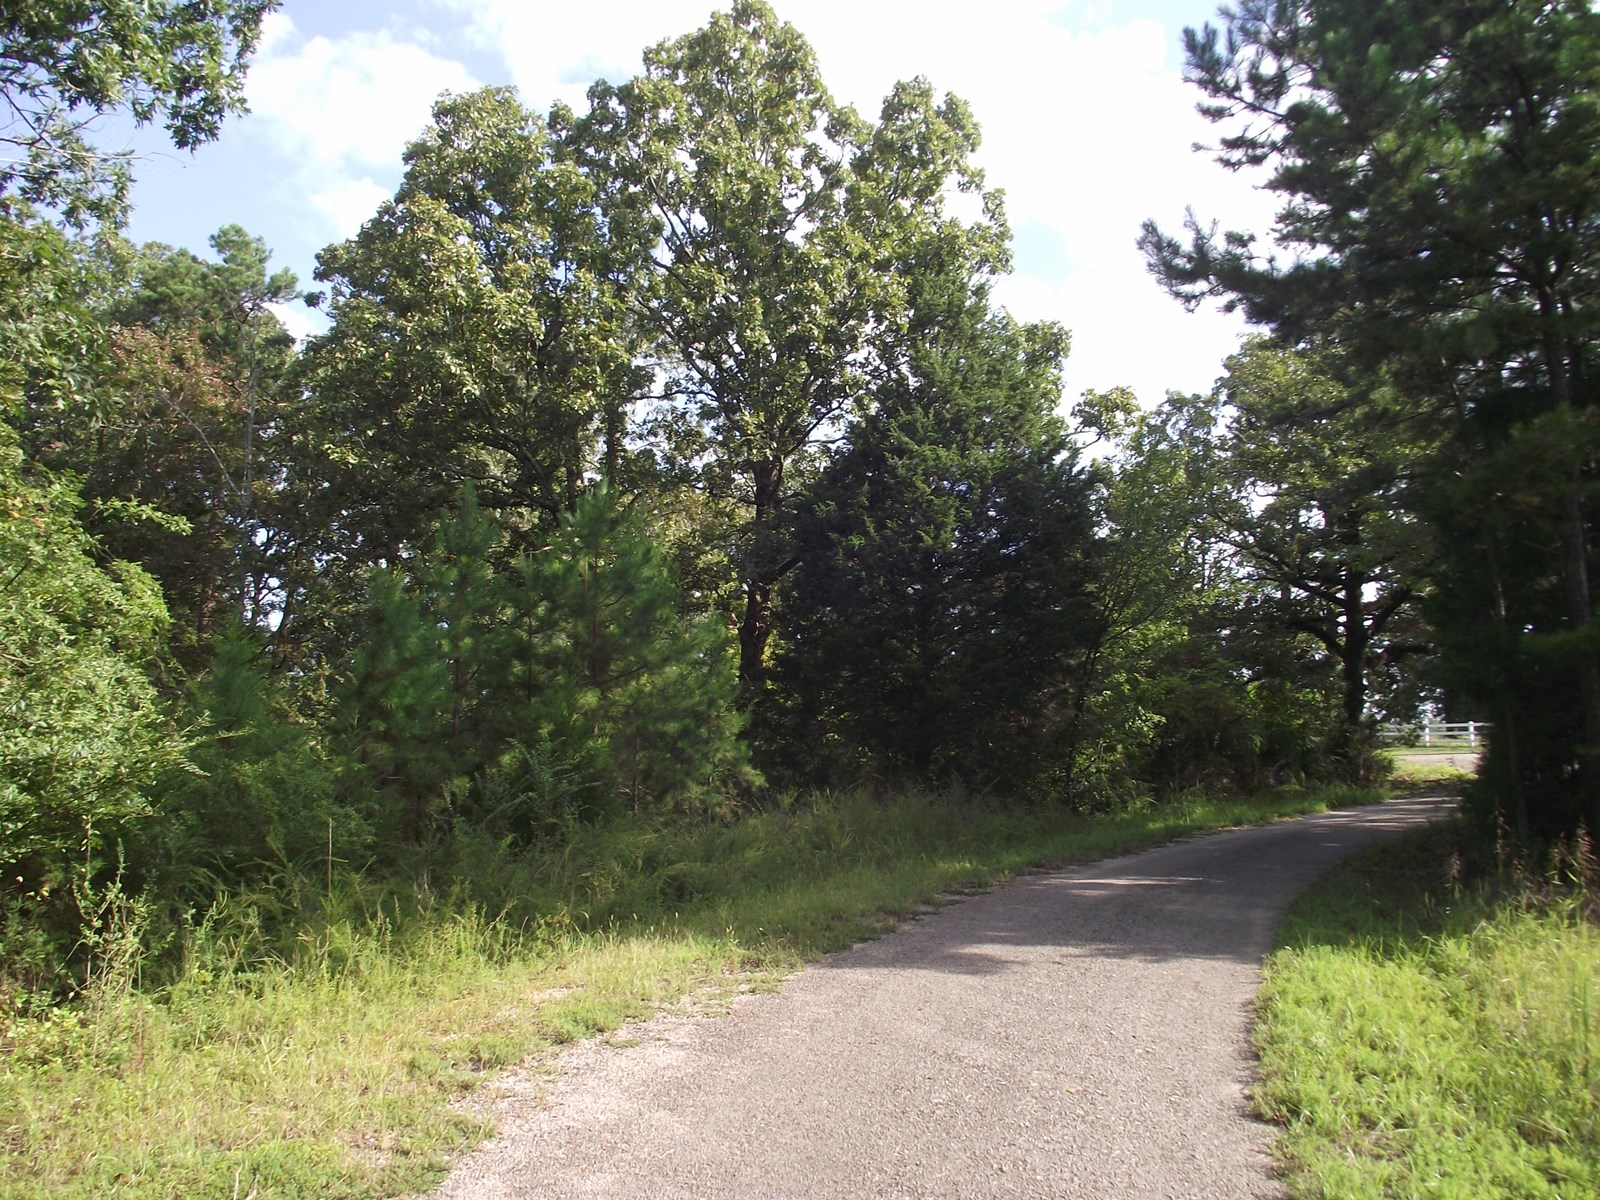 LAND FOR SALE NEAR PICKWICK READY TO BUILD ON